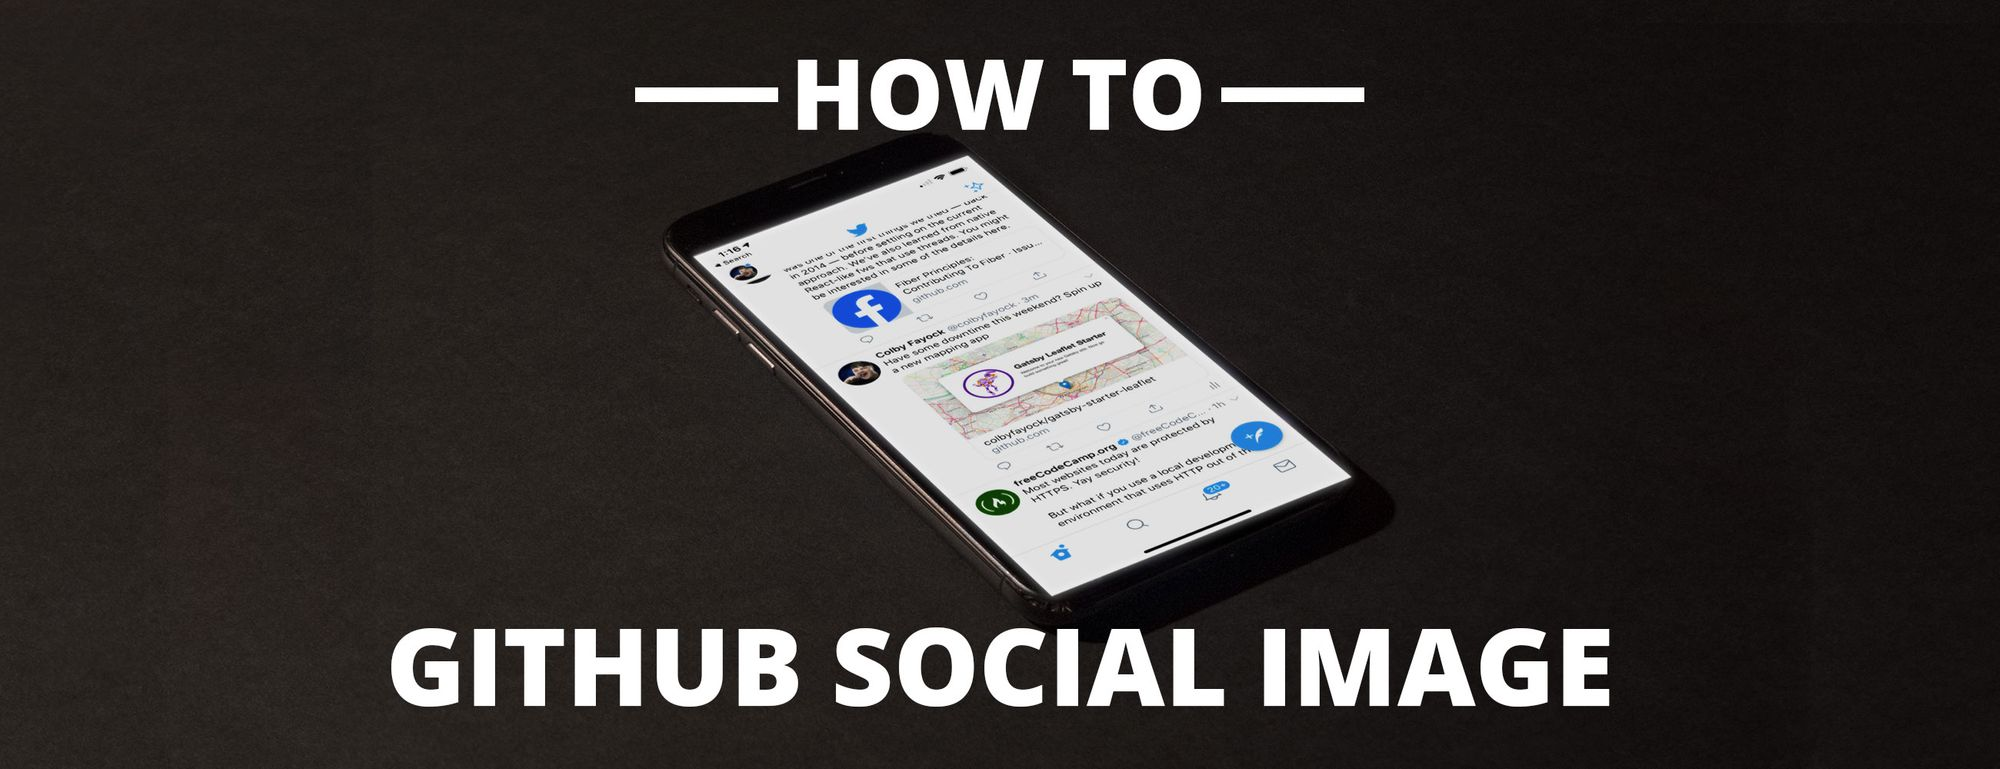 How to Add a Social Media Image to Your Github Project Repository